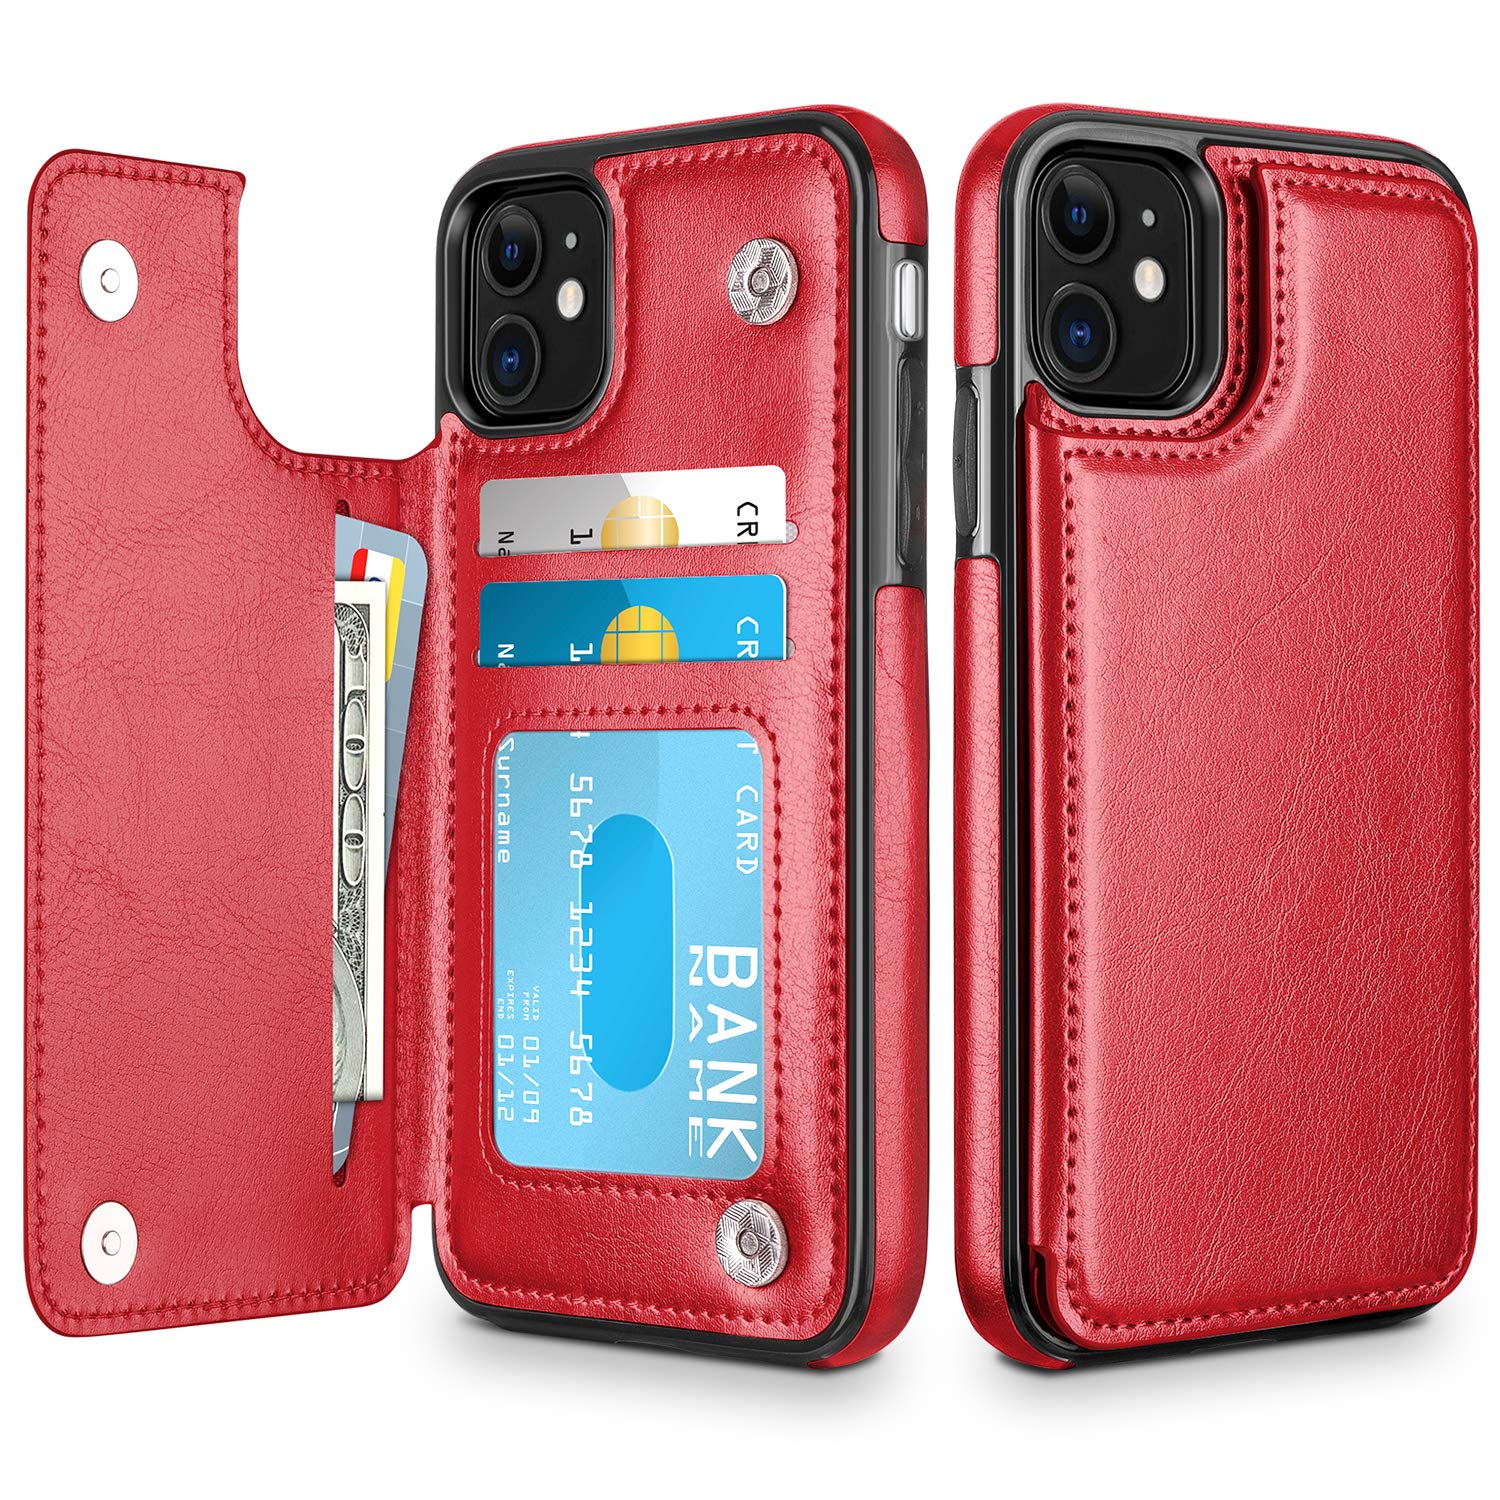 HianDier Wallet Case for iPhone 11 6.1-inch Slim Protective Case with Credit Card Slot Holder Flip Folio Soft PU Leather Magnetic Closure Cover for 2019 iPhone 11 iPhone XI, Red